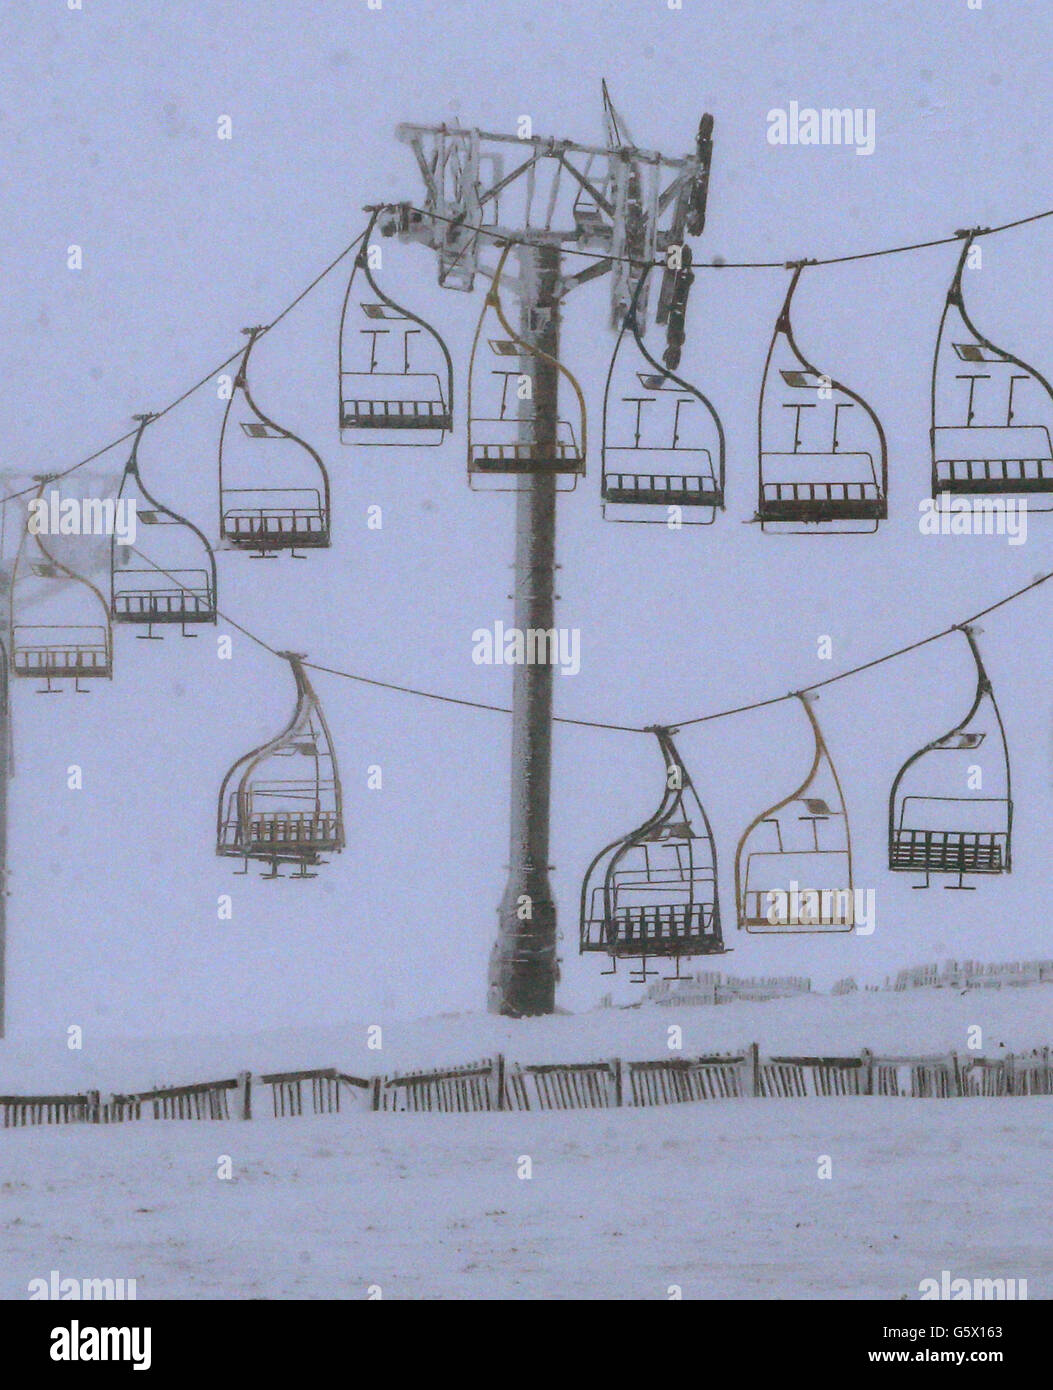 chair lift accident swing desk chairlift ski resort stock photos at image